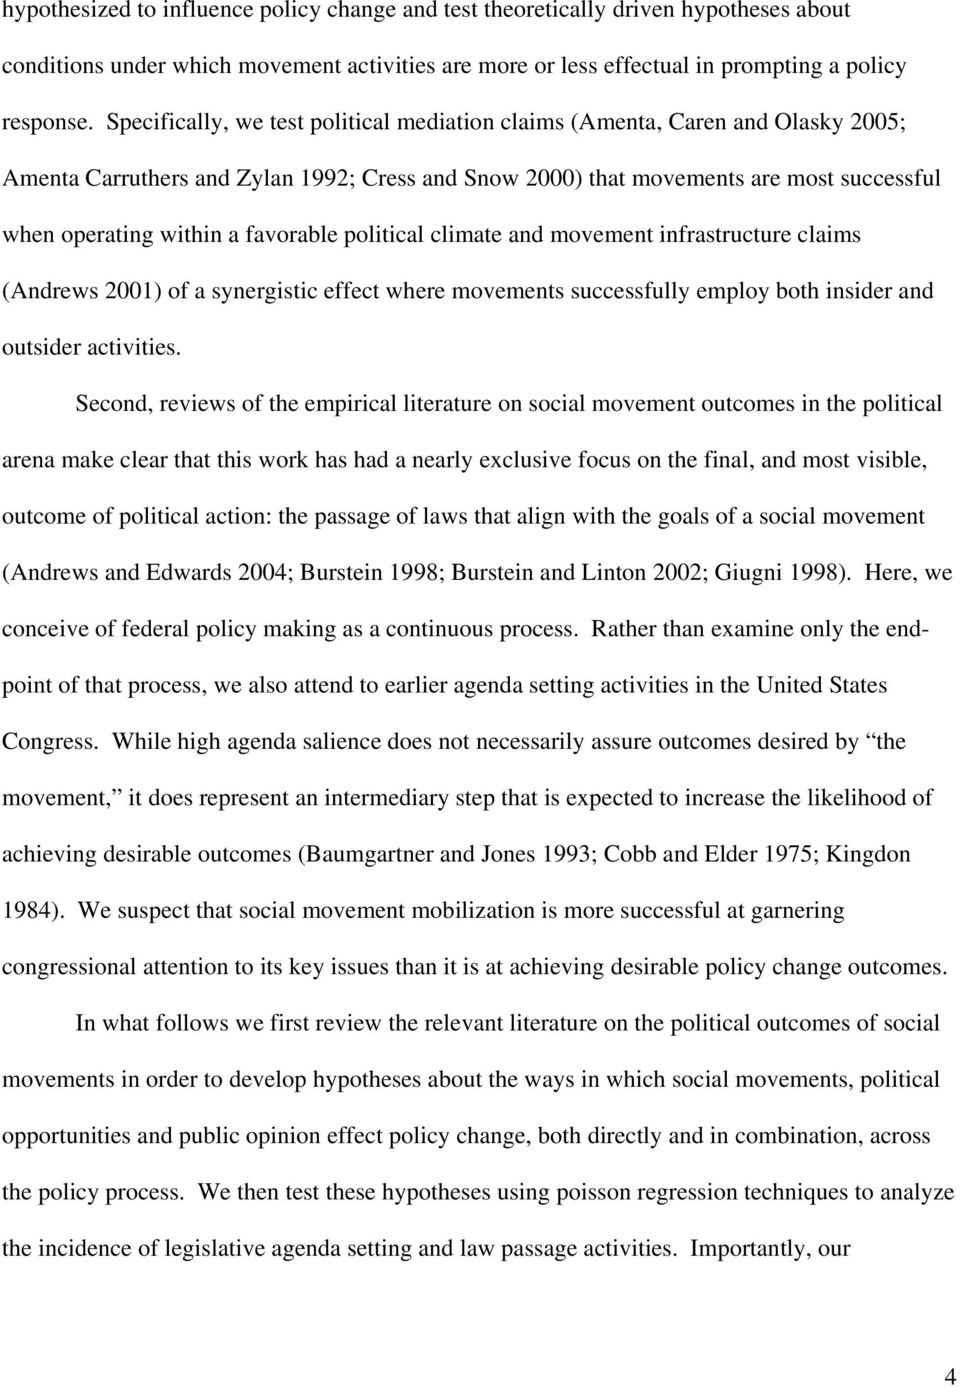 favorable political climate and movement infrastructure claims (Andrews 2001) of a synergistic effect where movements successfully employ both insider and outsider activities.